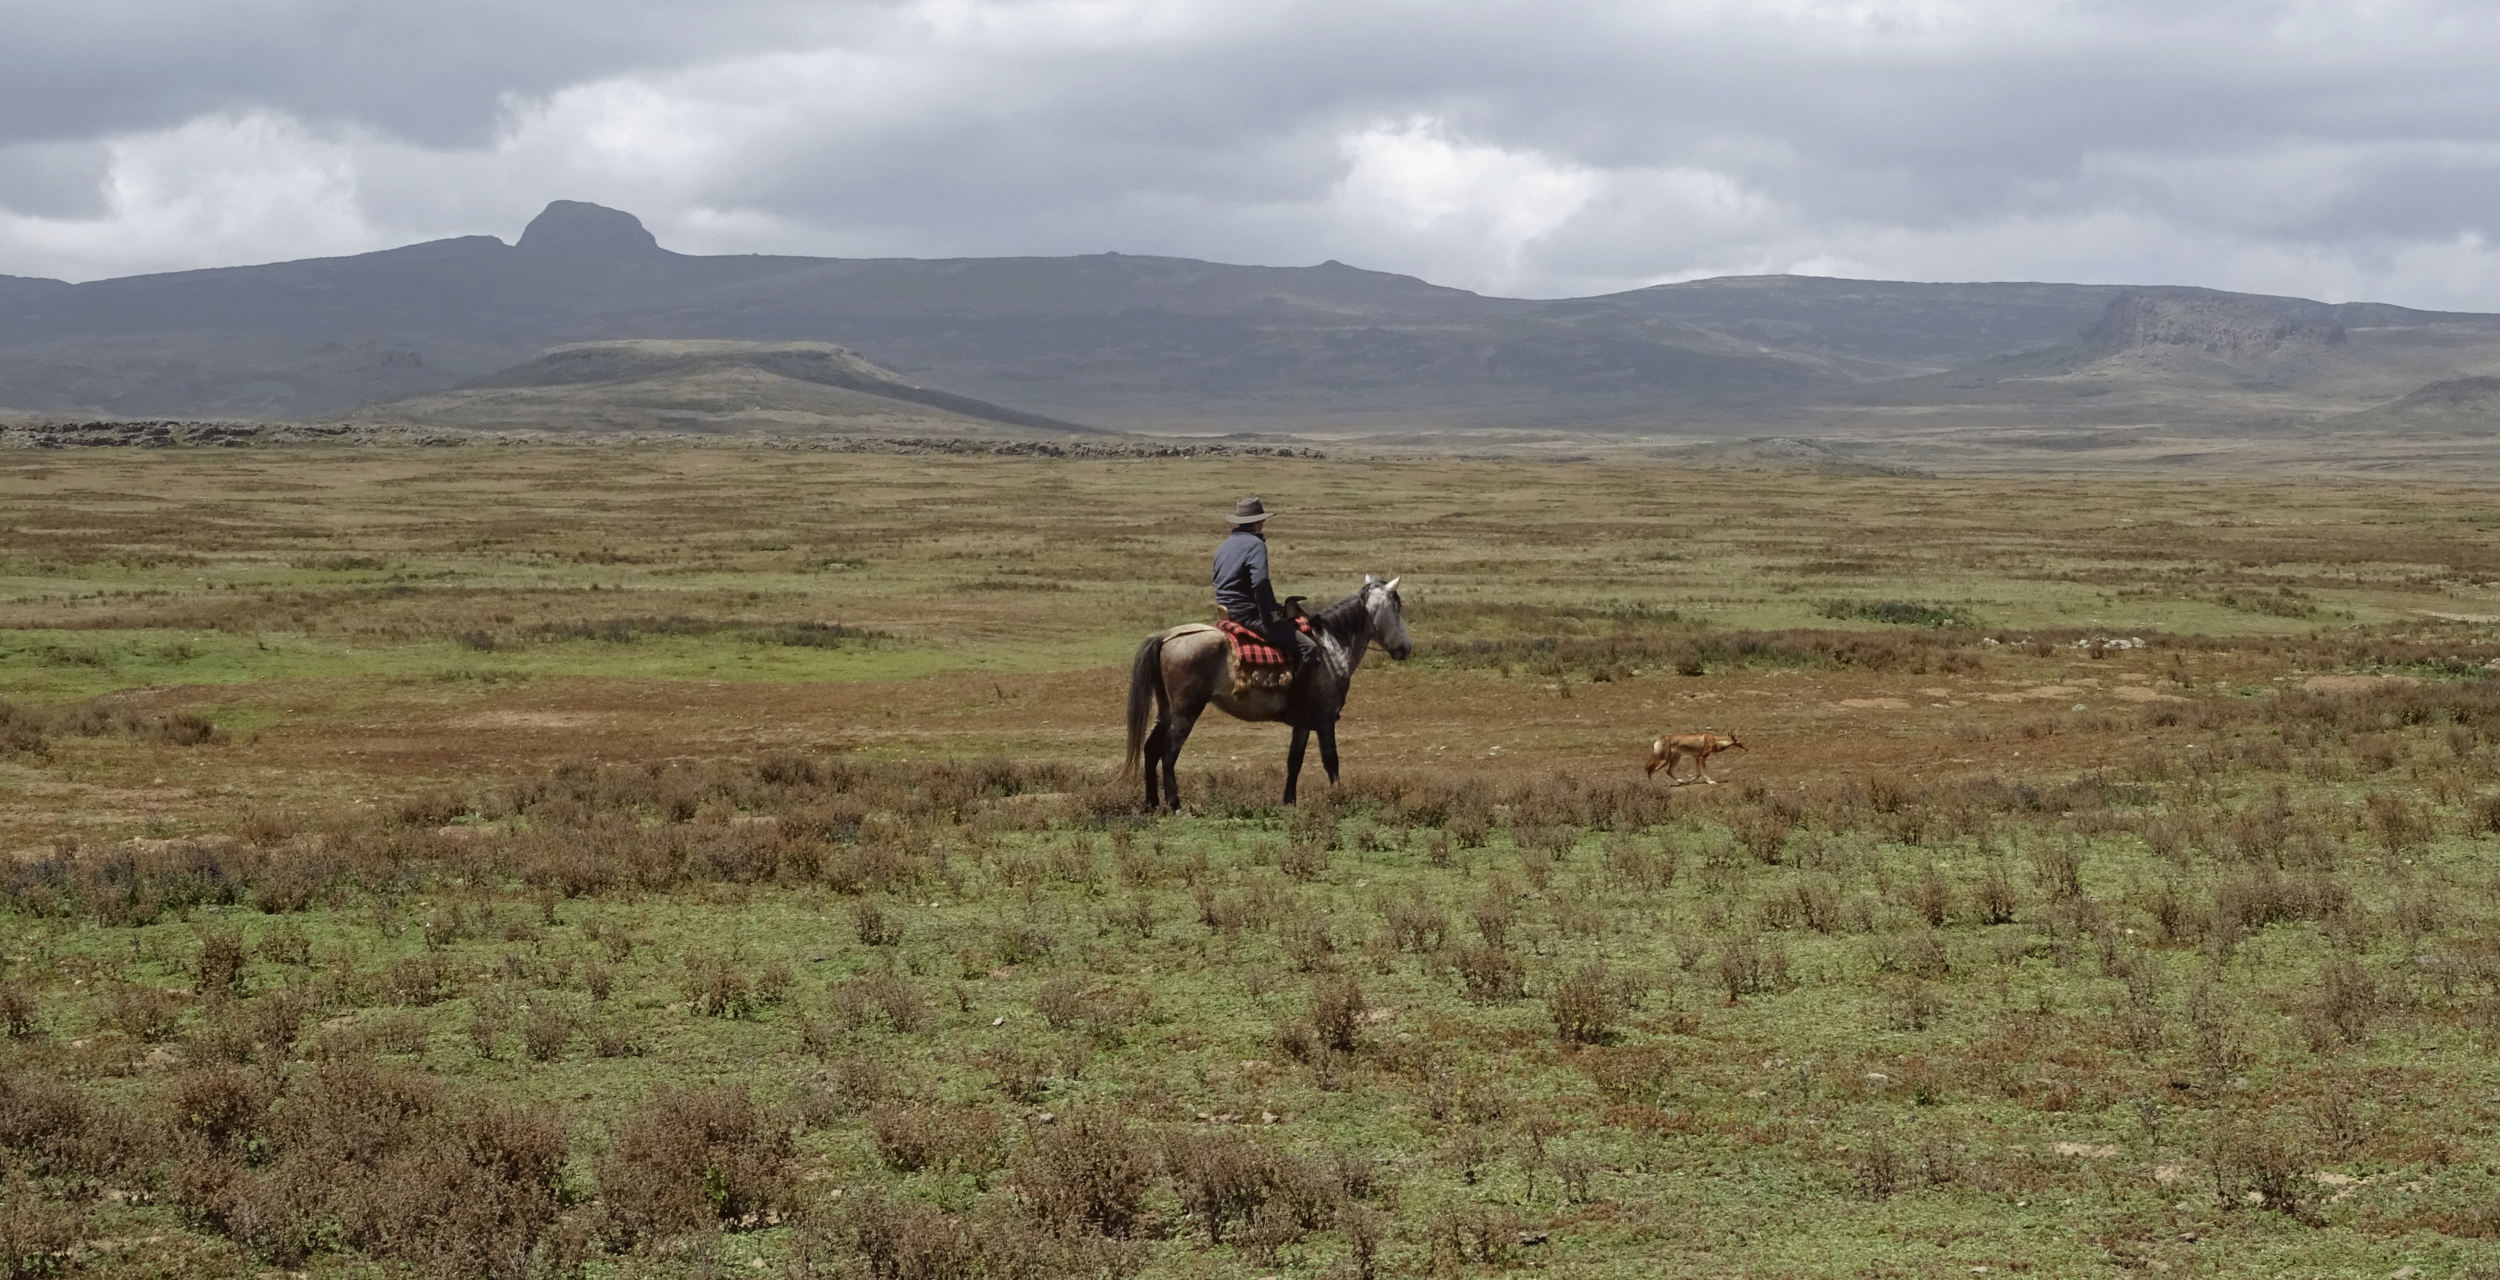 Bale-Mountains-Ethiopia-Horses.png